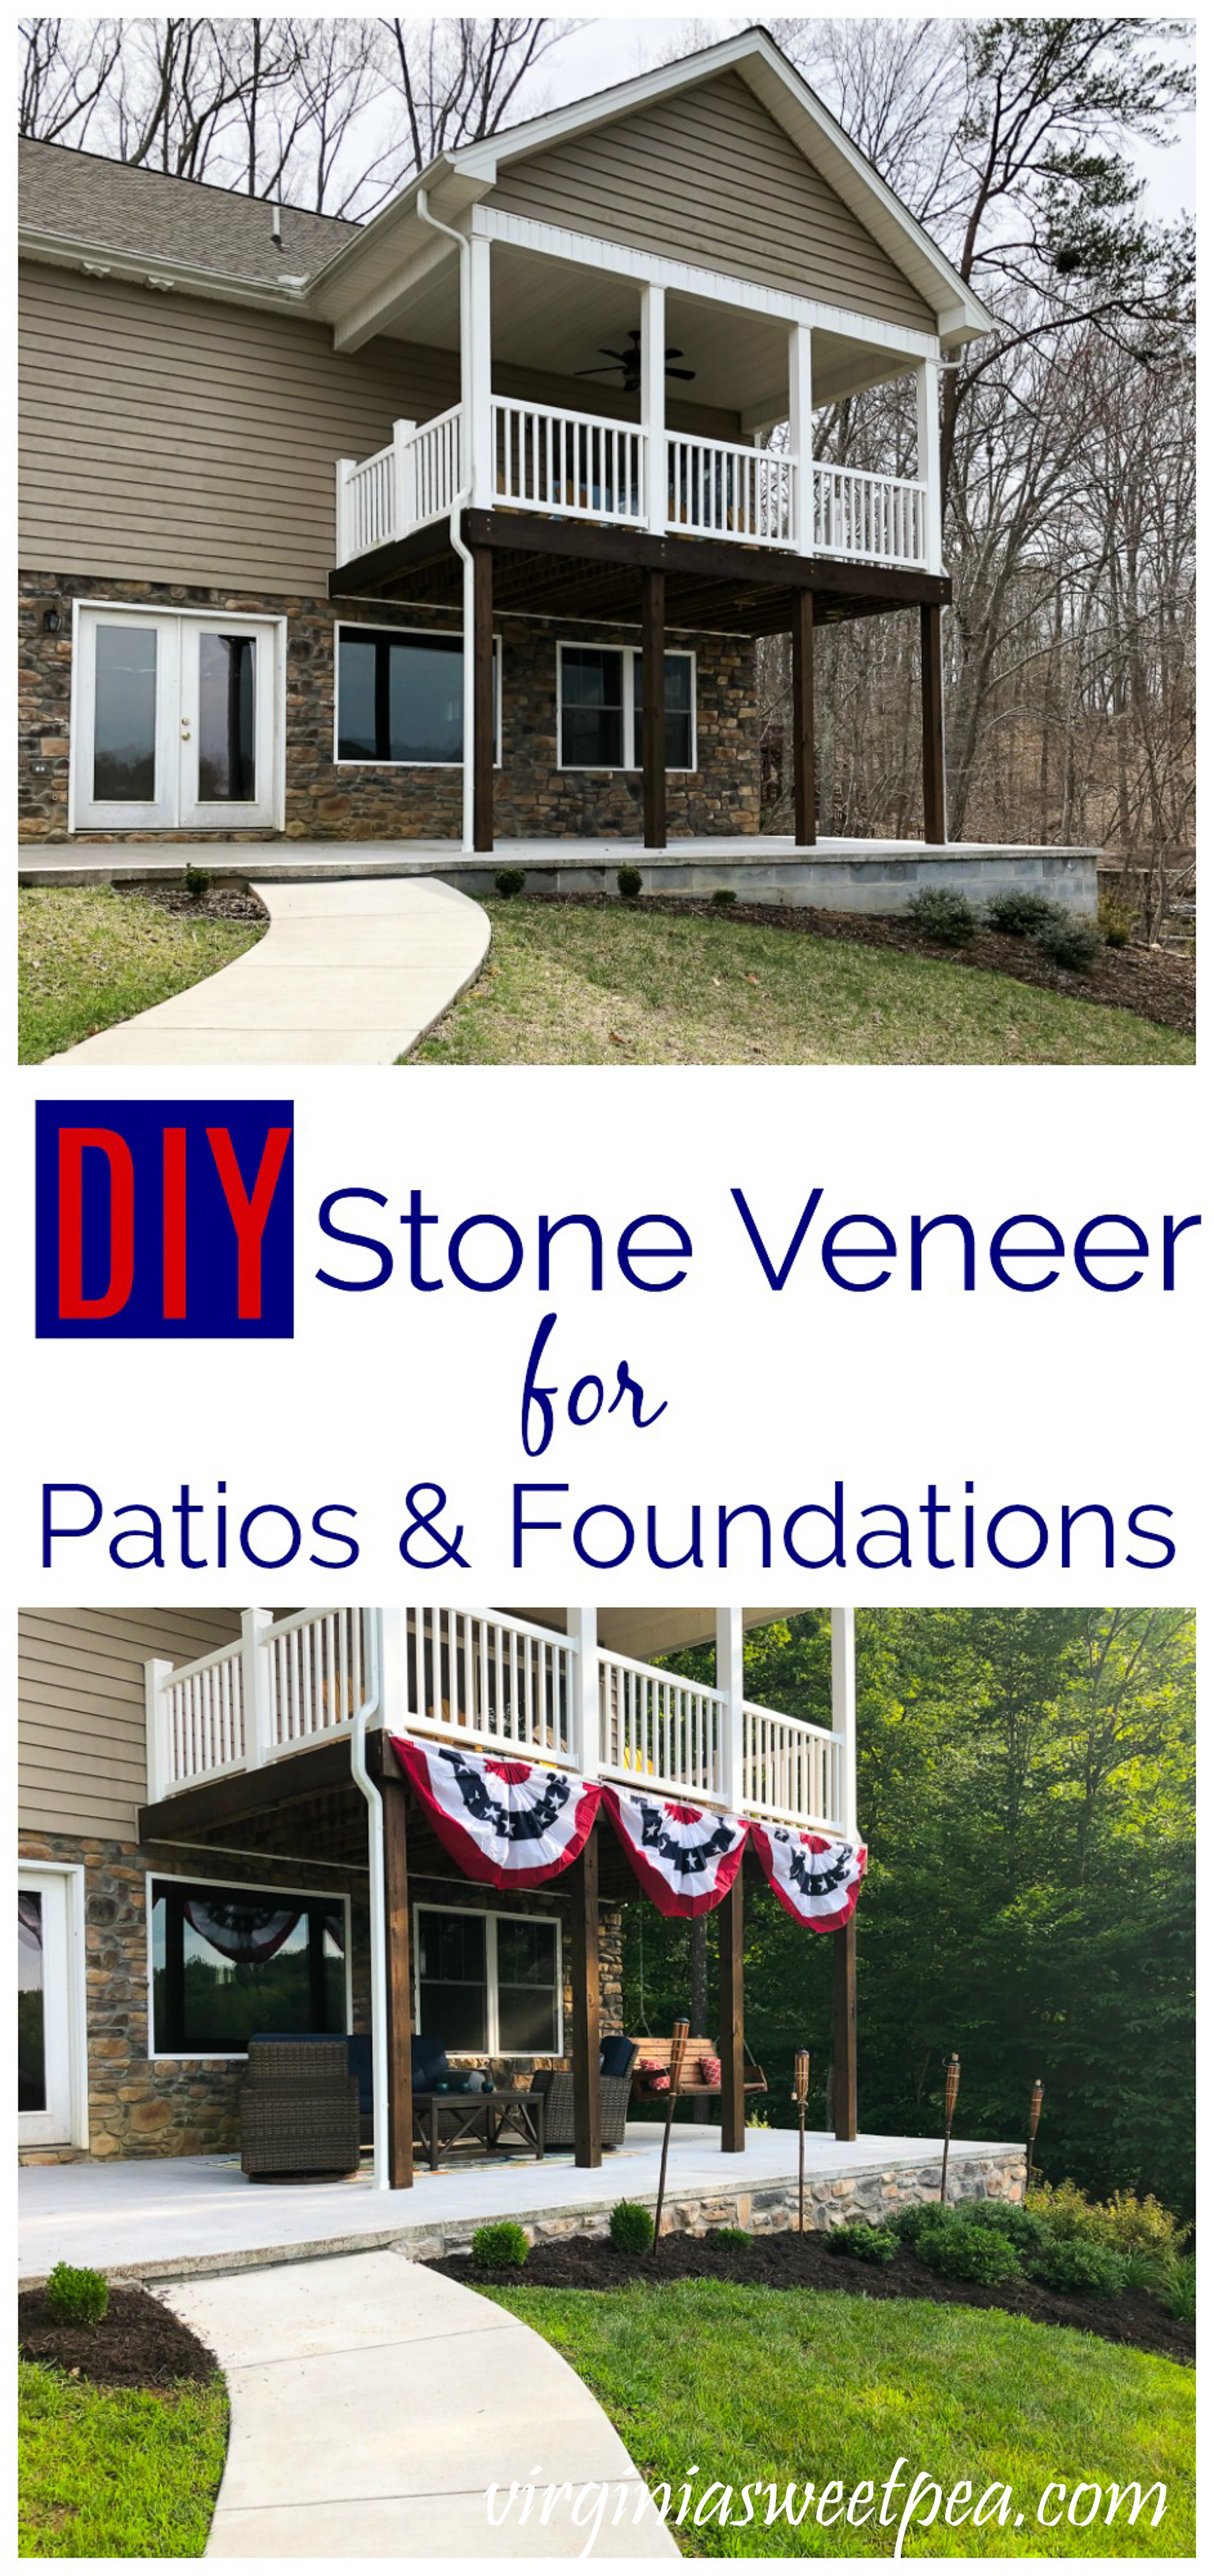 DIY Stone Veneer for Patios and Foundations - Give your foundation and patio walls a finished look with the addition of stone veneer. #stoneveneer #diystoneveneer via @spaula